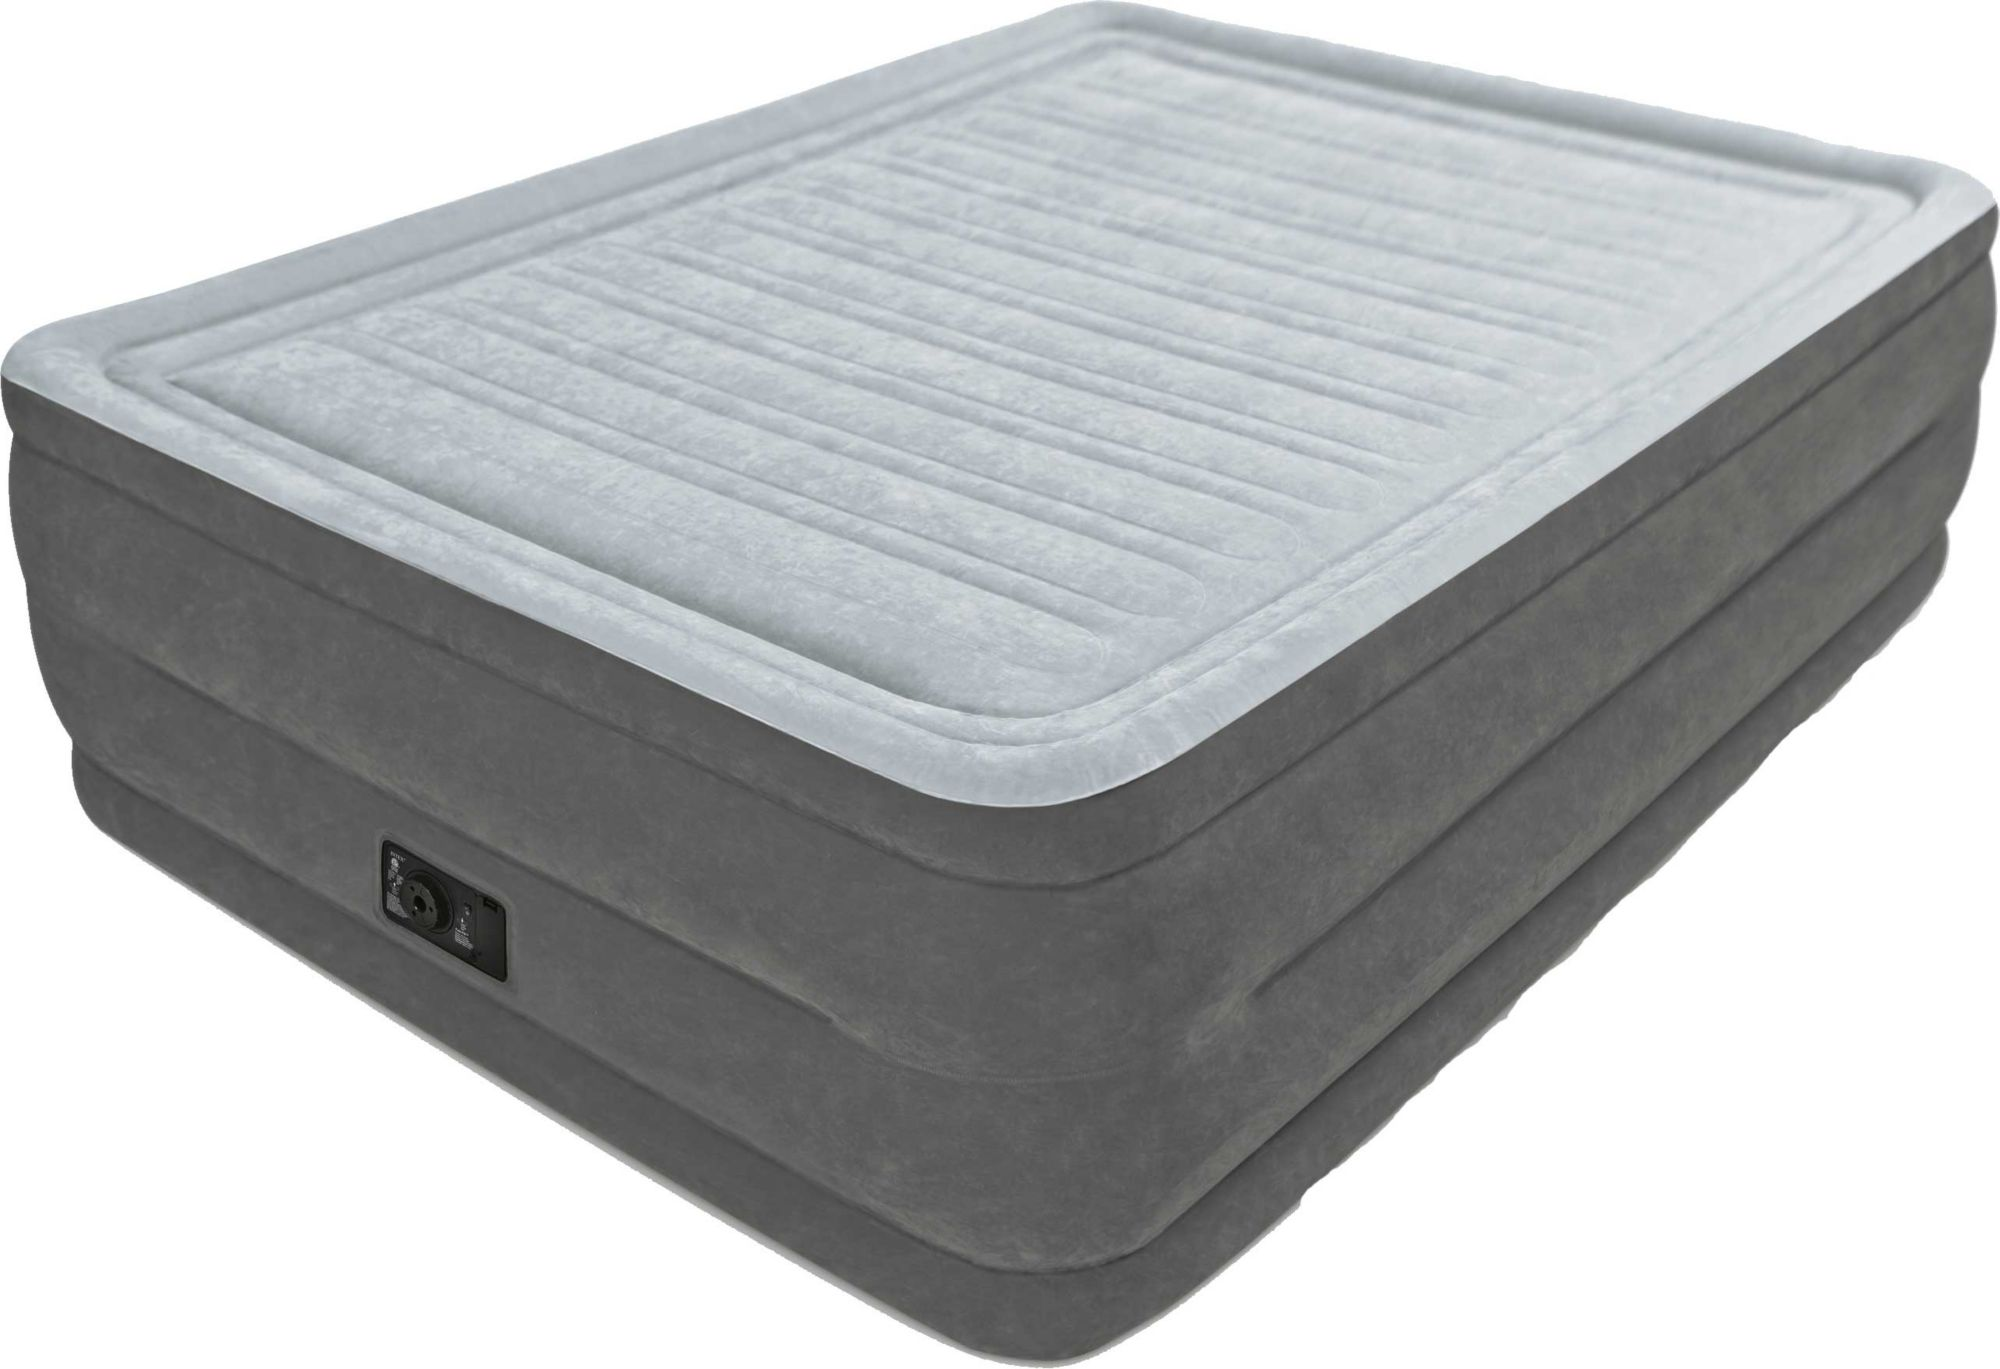 and the easy beds camping range transport store to air mattresses inflatable bed